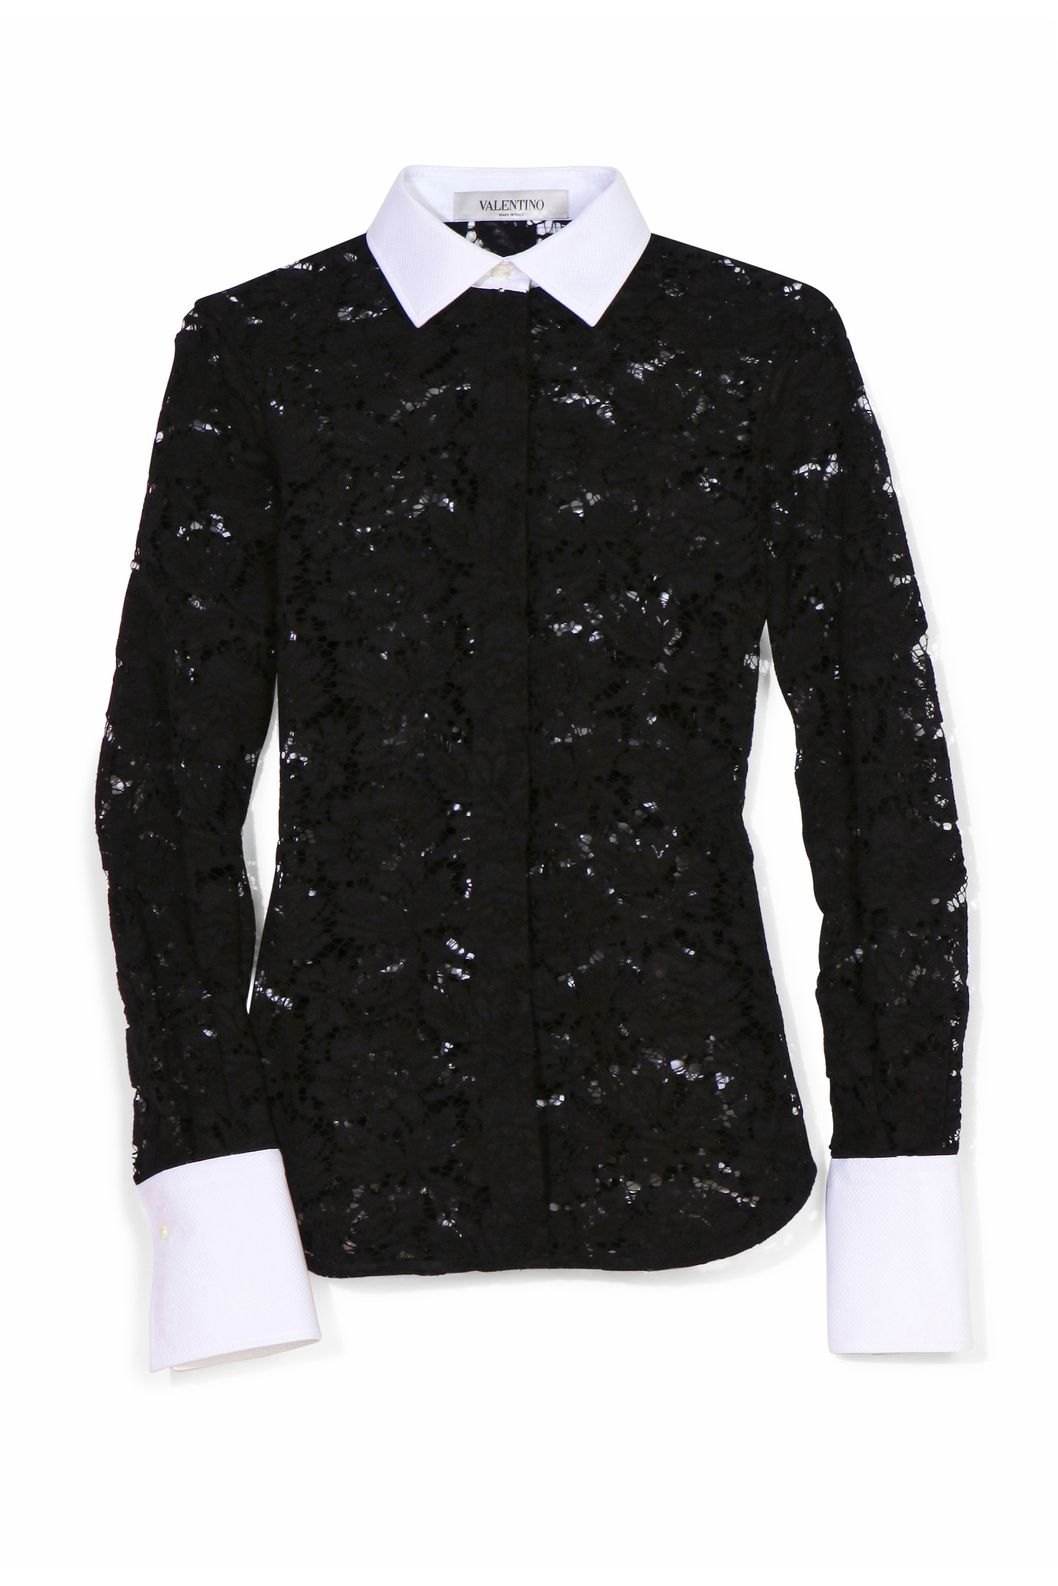 Find great deals on eBay for black collar blouse. Shop with confidence.